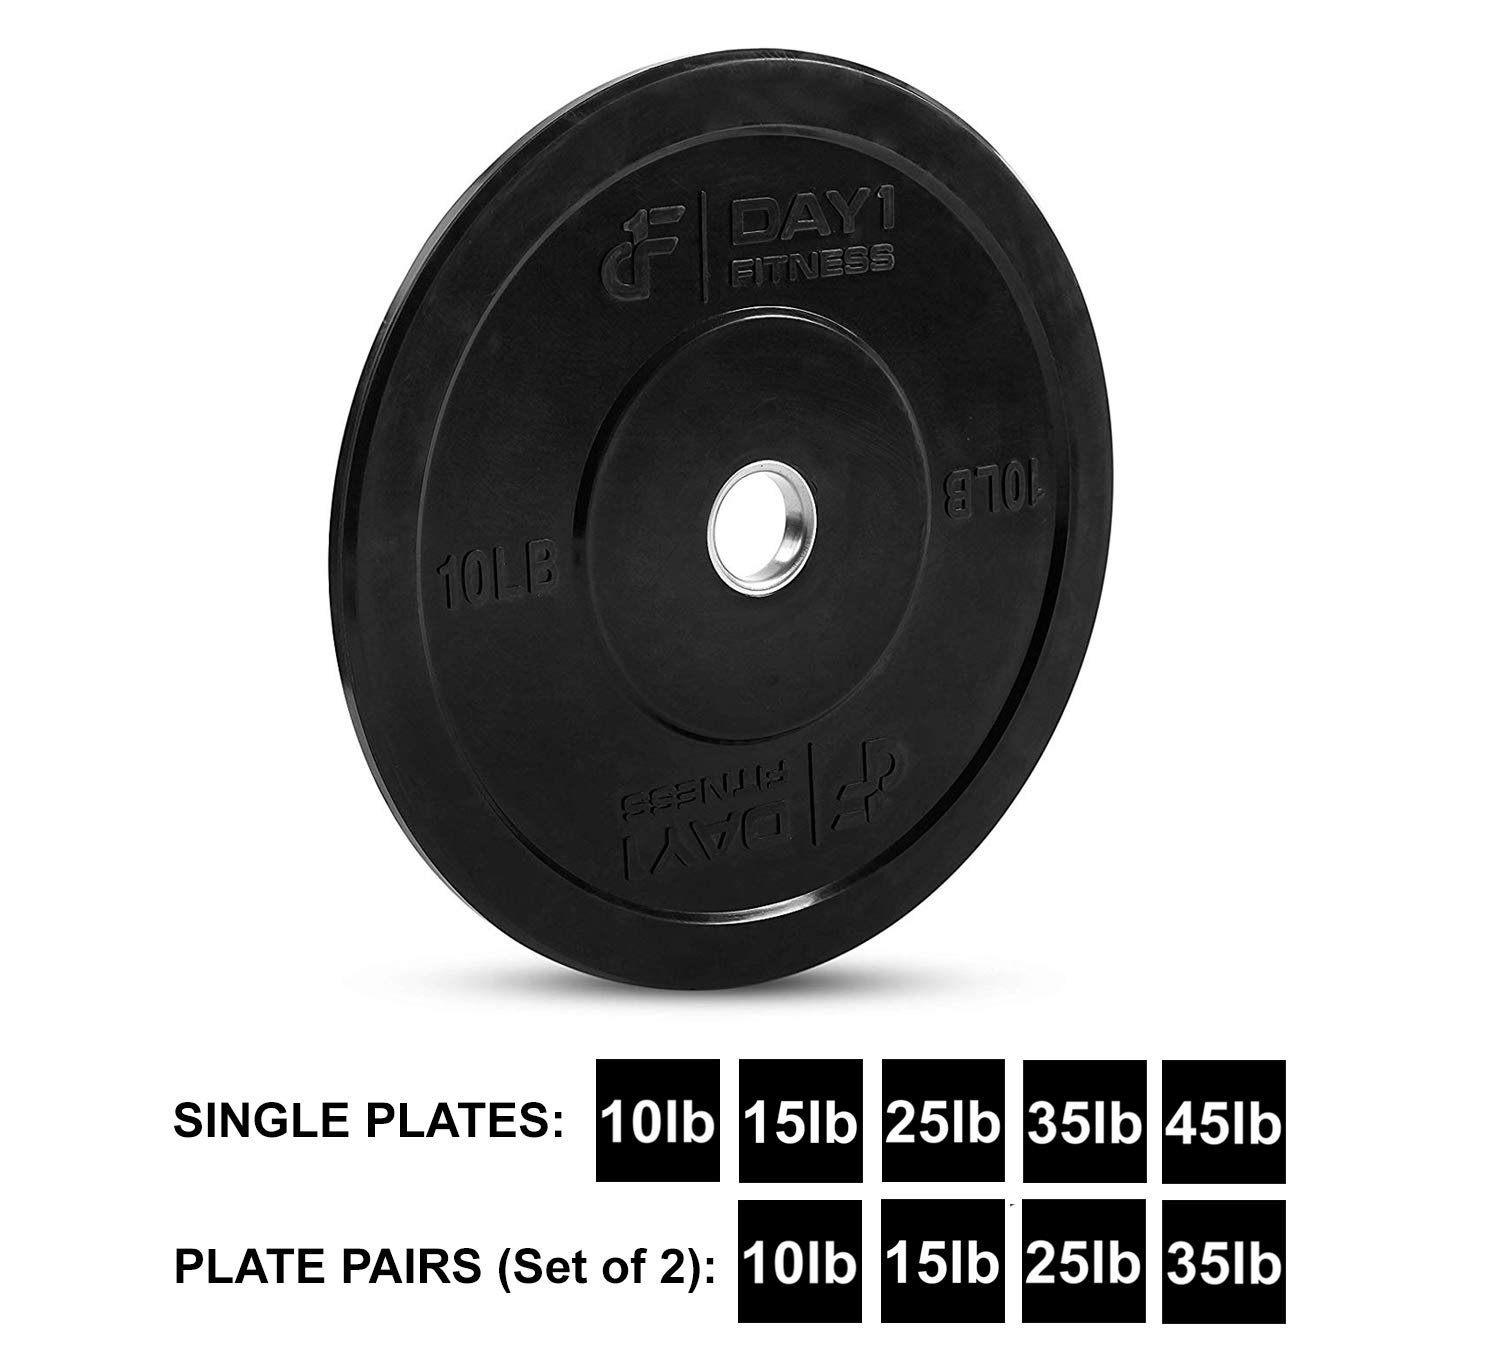 """Day 1 Fitness Olympic Bumper Weighted Plate 2"""" for Barbells, Bars – 10 lb Single Plate - Shock-Absorbing, Minimal Bounce Steel Weights with Bumpers for Lifting, Strength Training, and Working Out by Day 1 Fitness (Image #1)"""